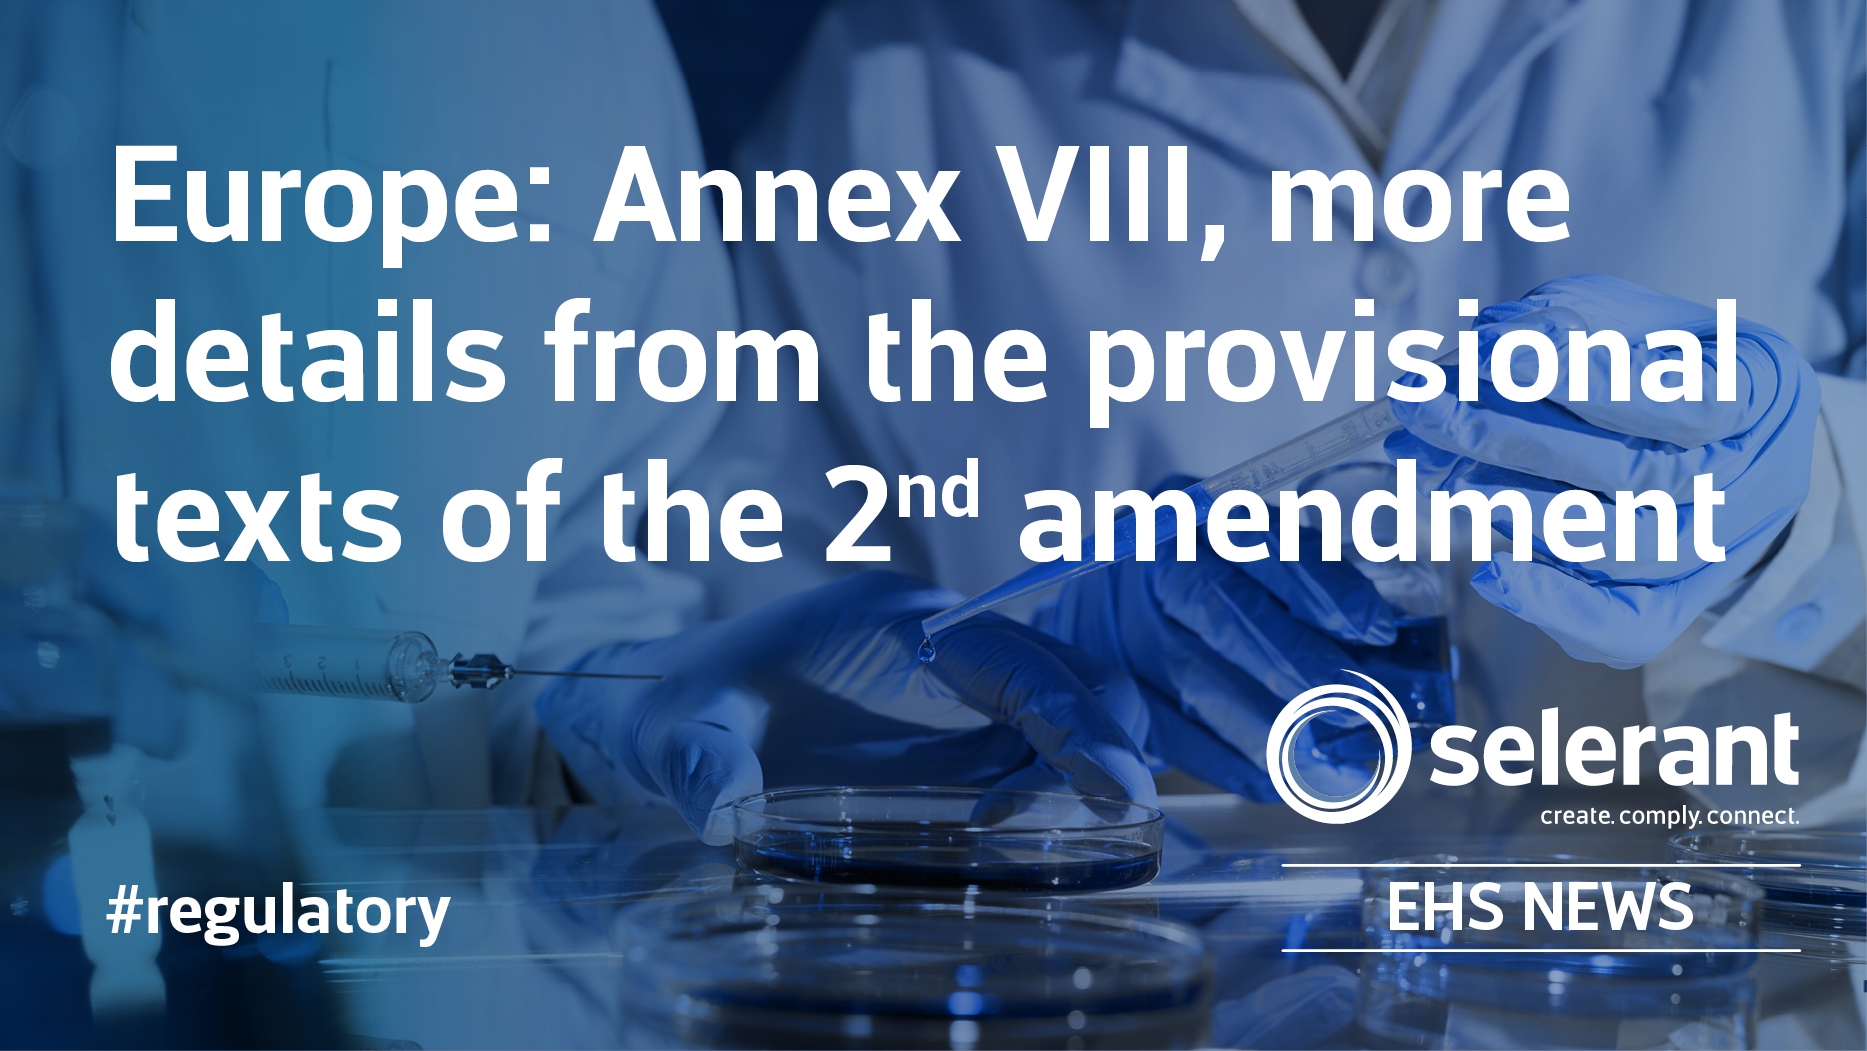 Europe: Annex VIII, more details from the provisional texts of the 2nd amendment